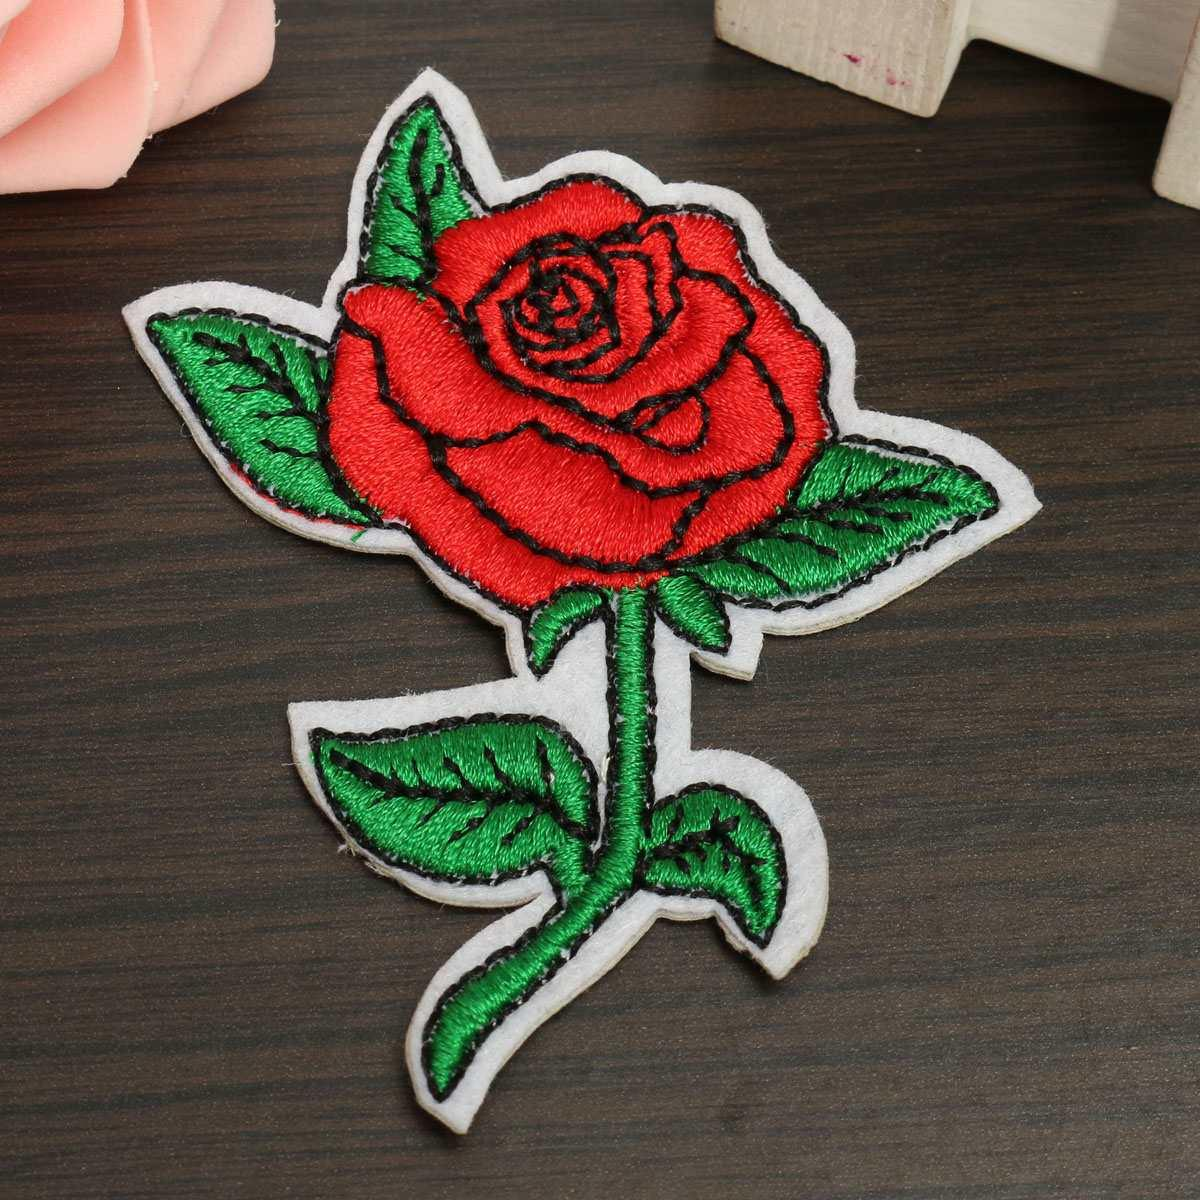 Diy Handmade Embroidered Patch: Online Cheap Red Rose Sew On Embroidered Patch Clothes